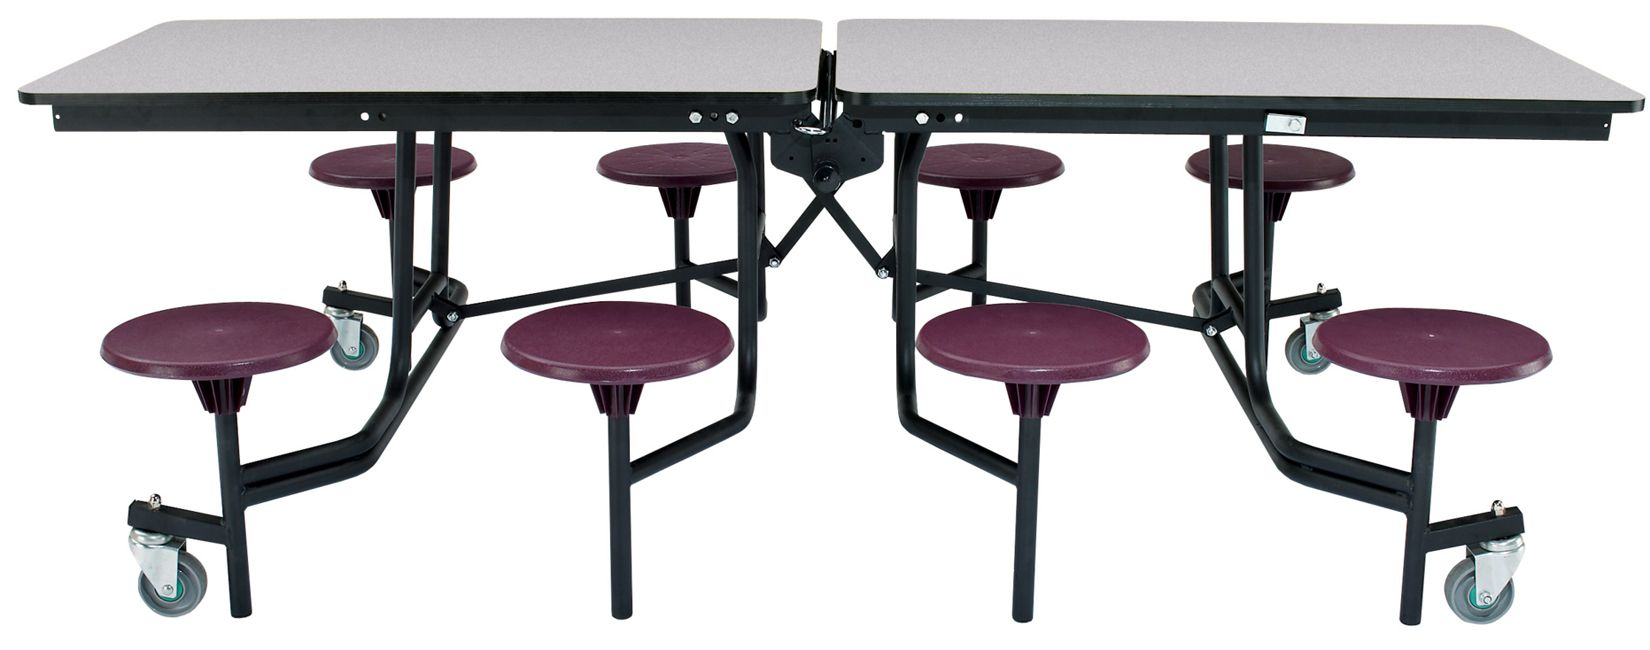 Mobile Stool Cafeteria Table Particleboard Top W T Mold Edge 8 L Cafeteria Table Black Dining Room Chairs Industrial Dining Chairs